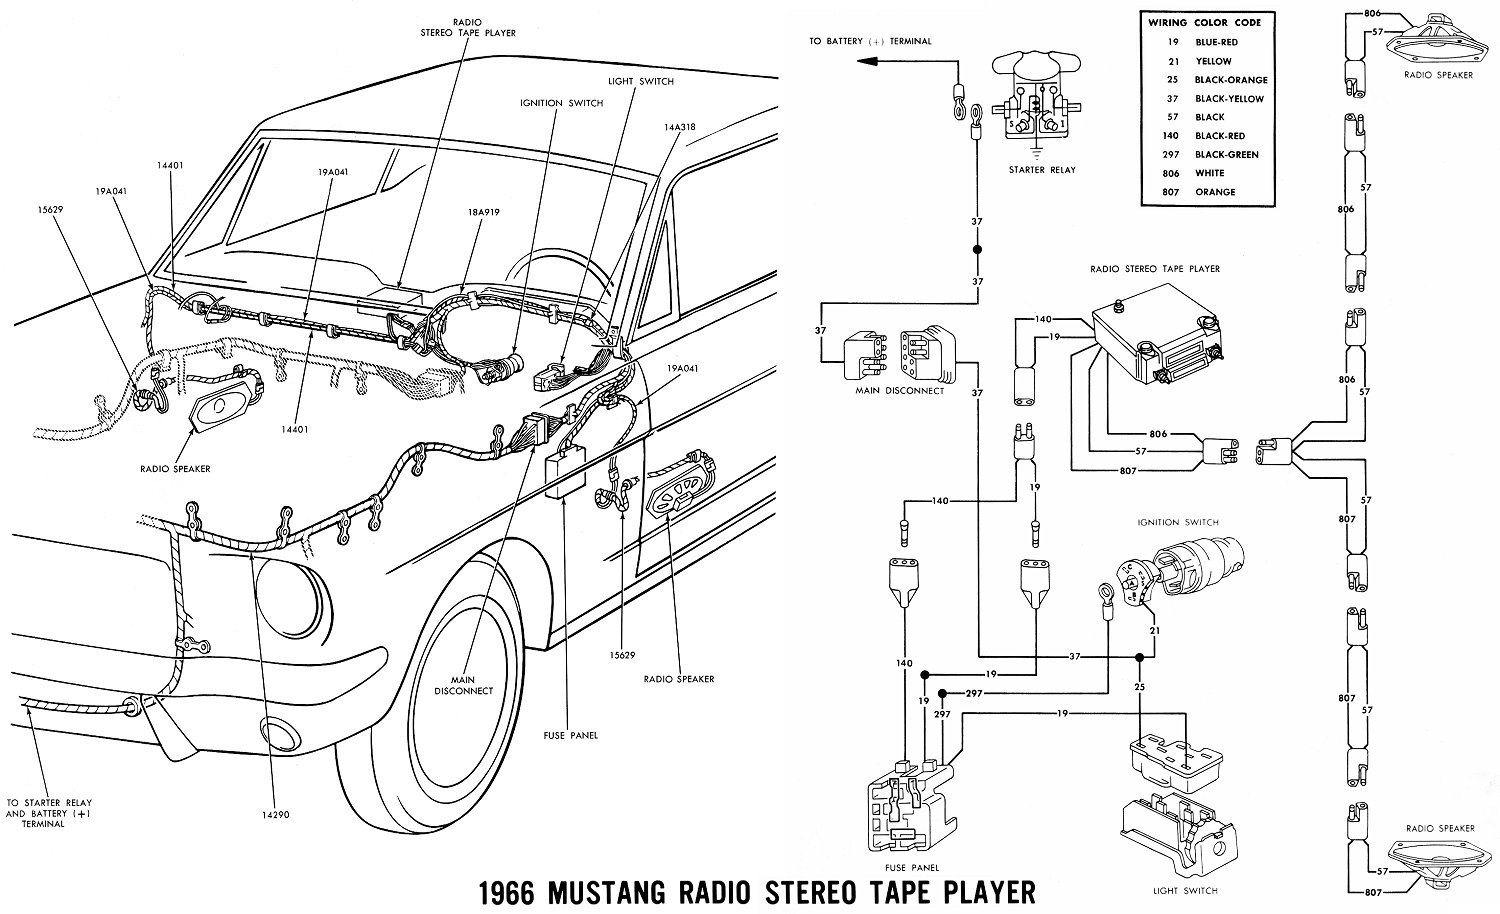 1966 Mustang Wiring Diagrams Average Joe Restoration 1968 Dash Cluster Diagram Sm66ste